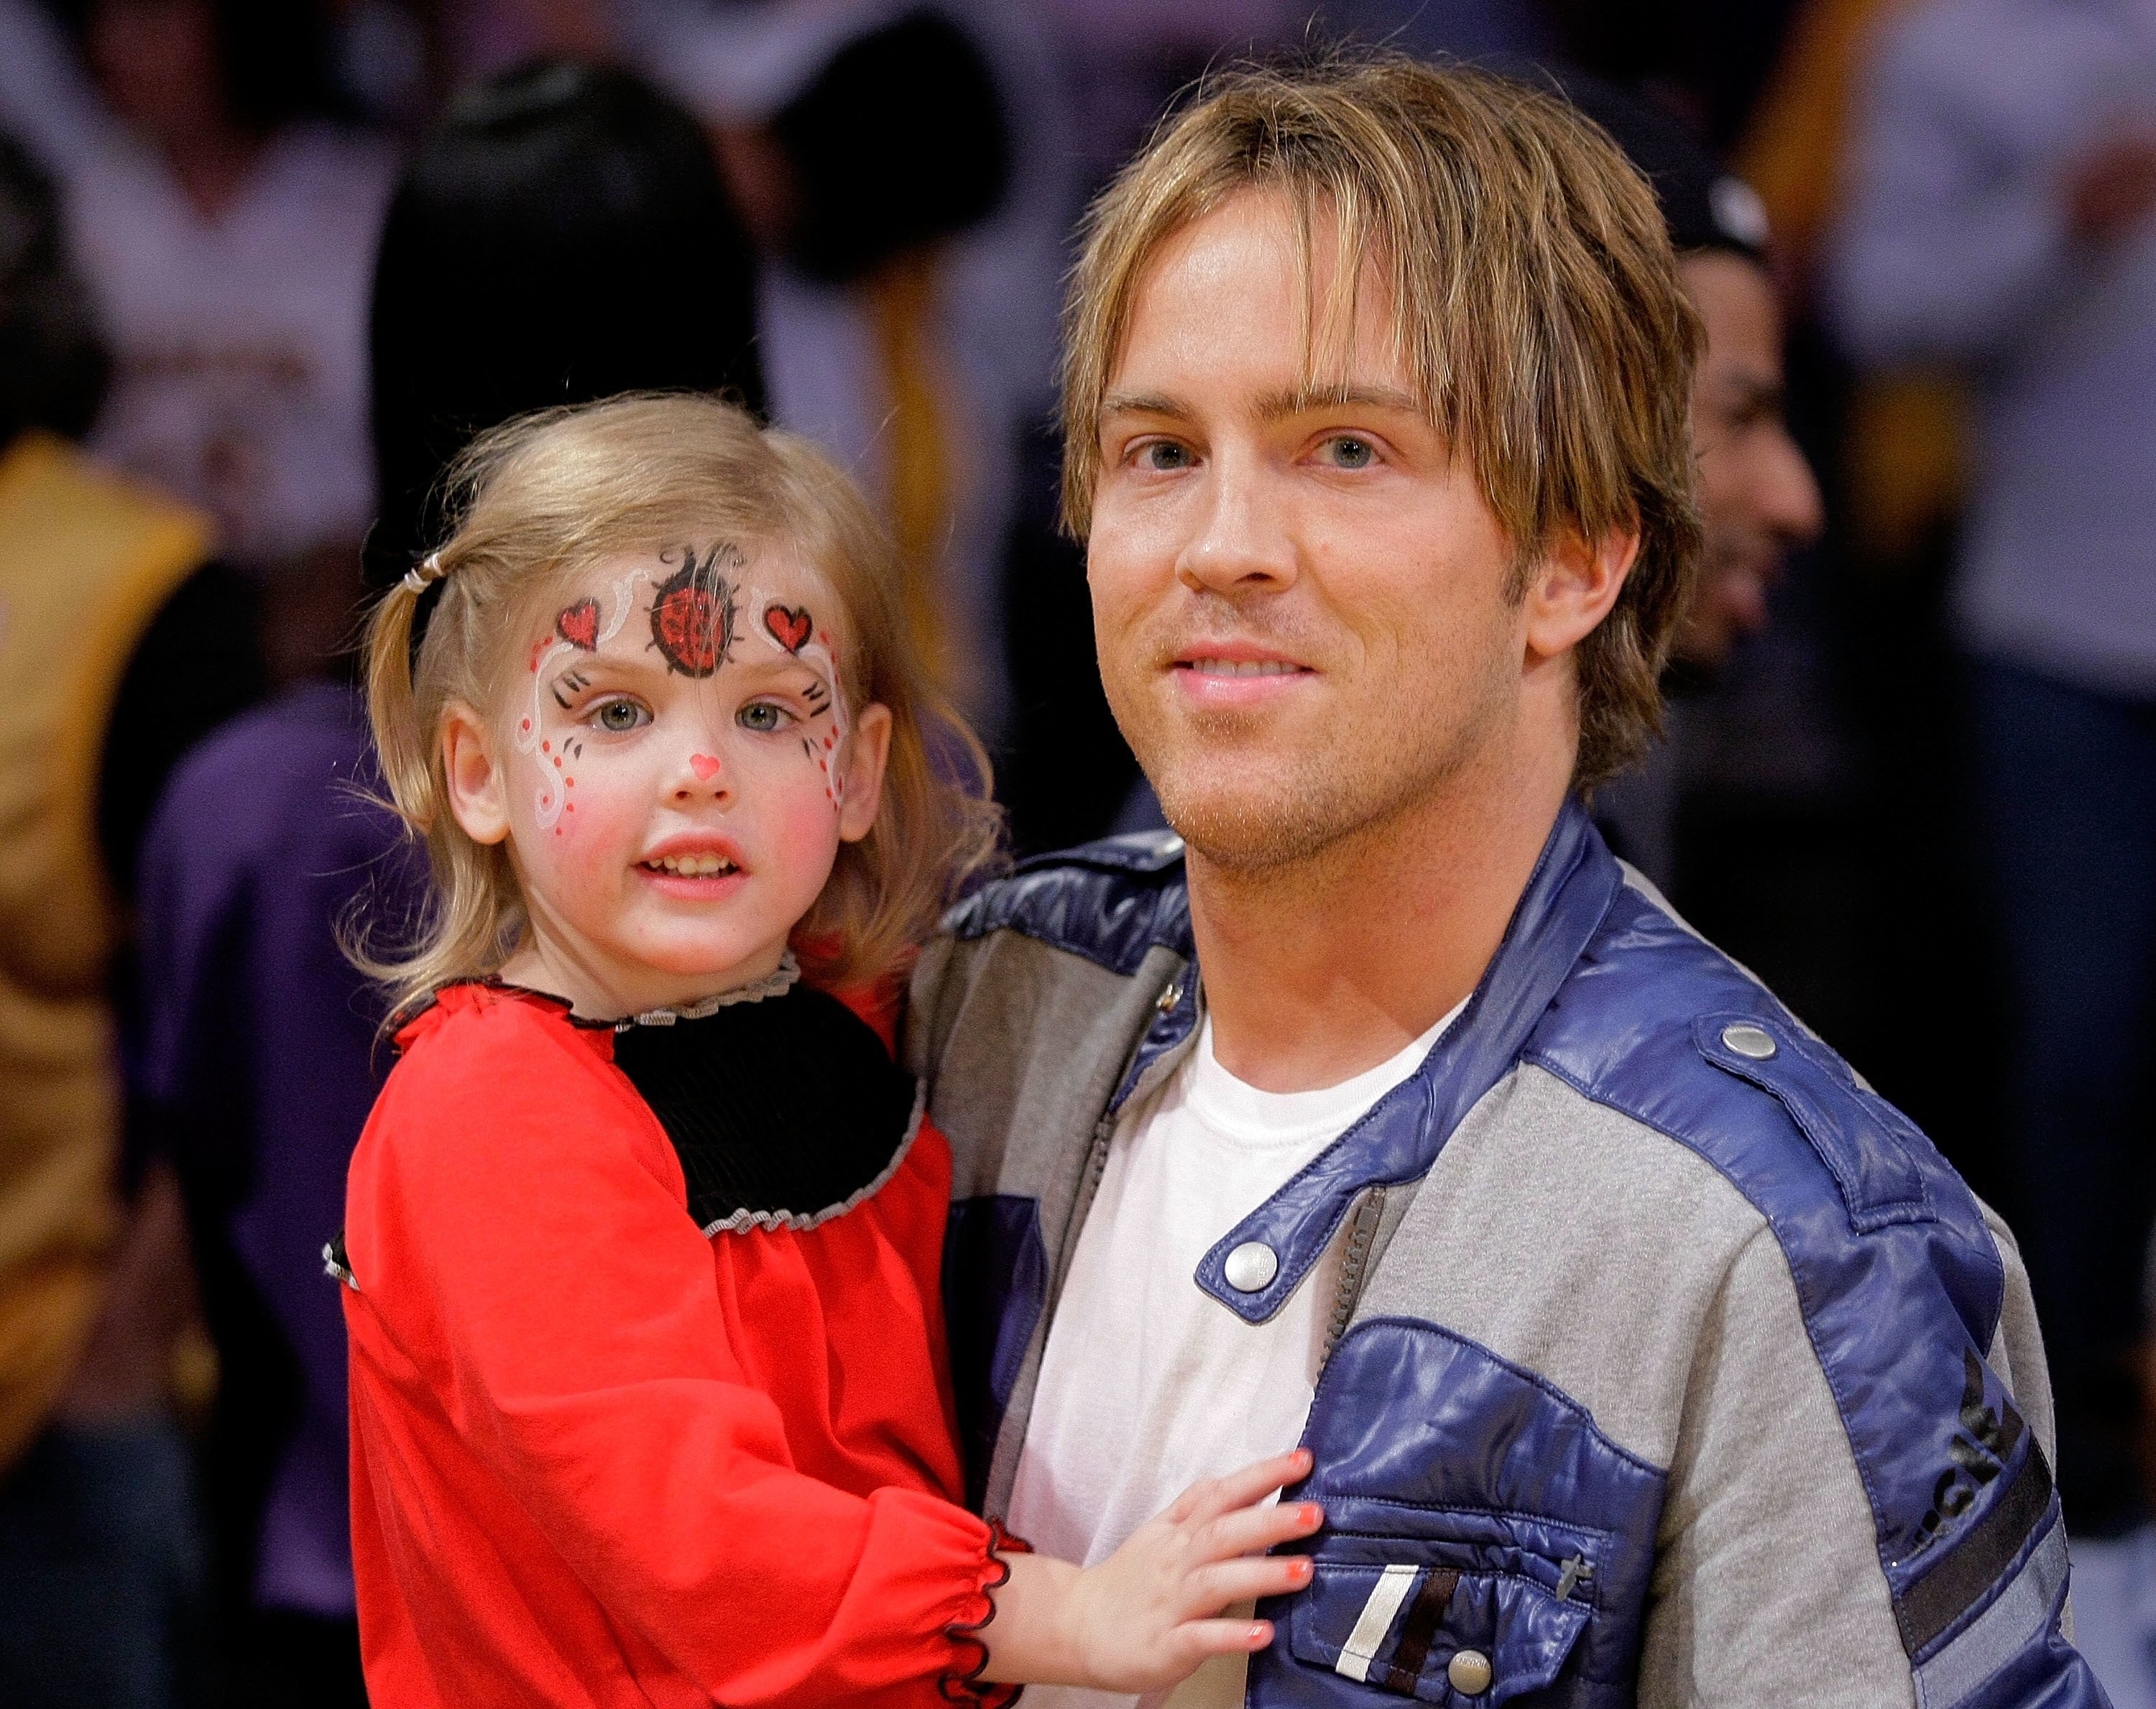 Larry Birkhead and his daughter Dannielynn Birkhead at a game on November 8, 2009 in Los Angeles, California. | Photo: Getty Images